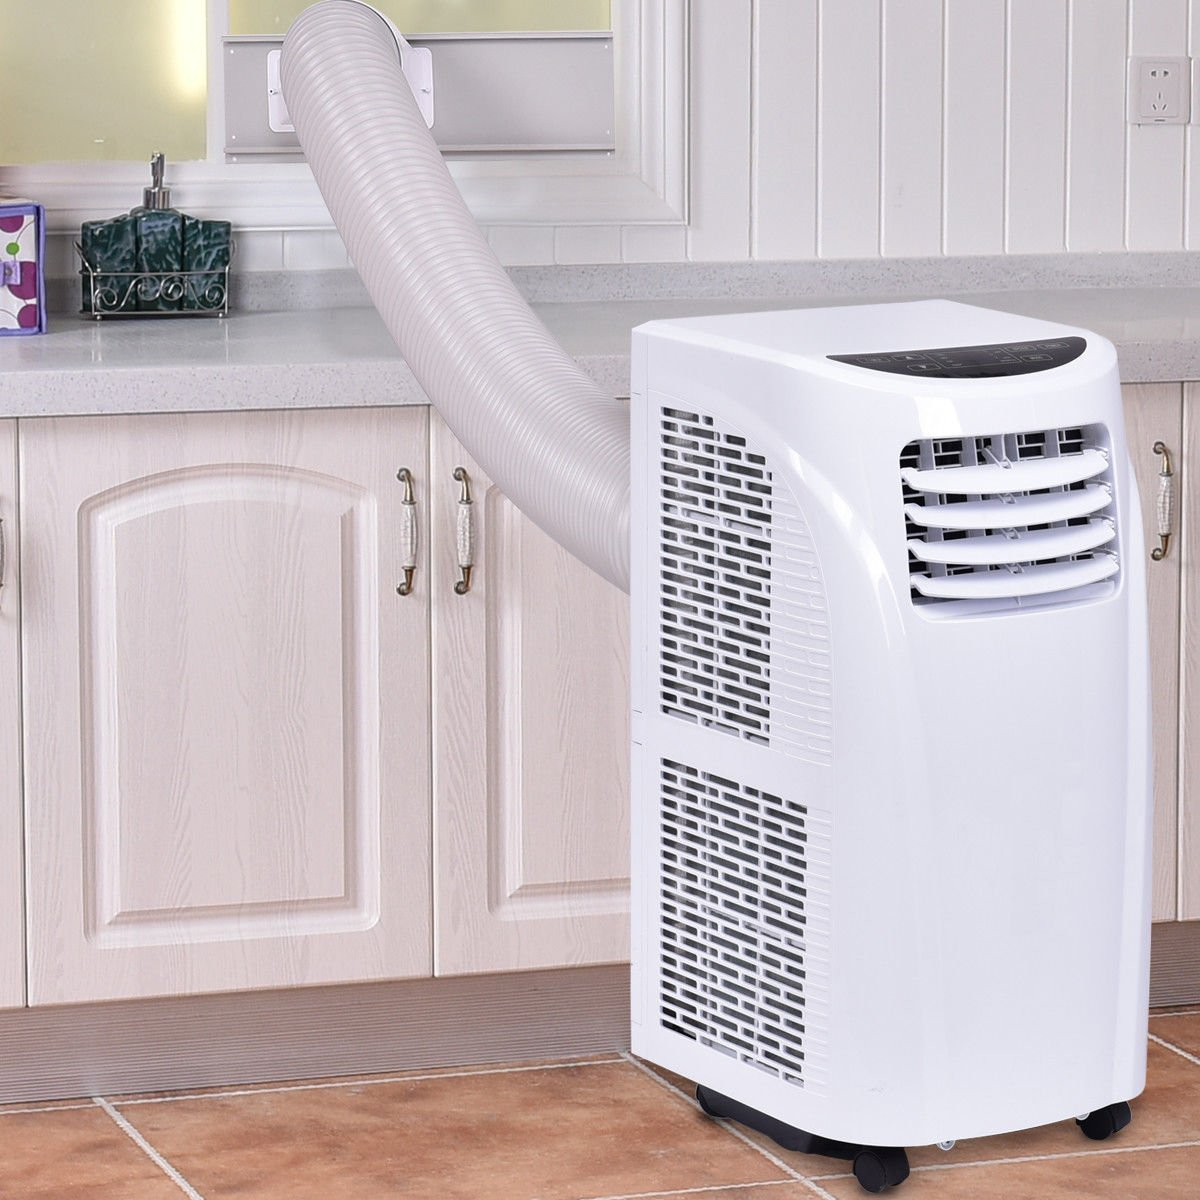 Costway 10,000 BTU Portable Air Conditioner with Remote Control Dehumidifier Function Window Wall Mount in White by COSTWAY (Image #2)